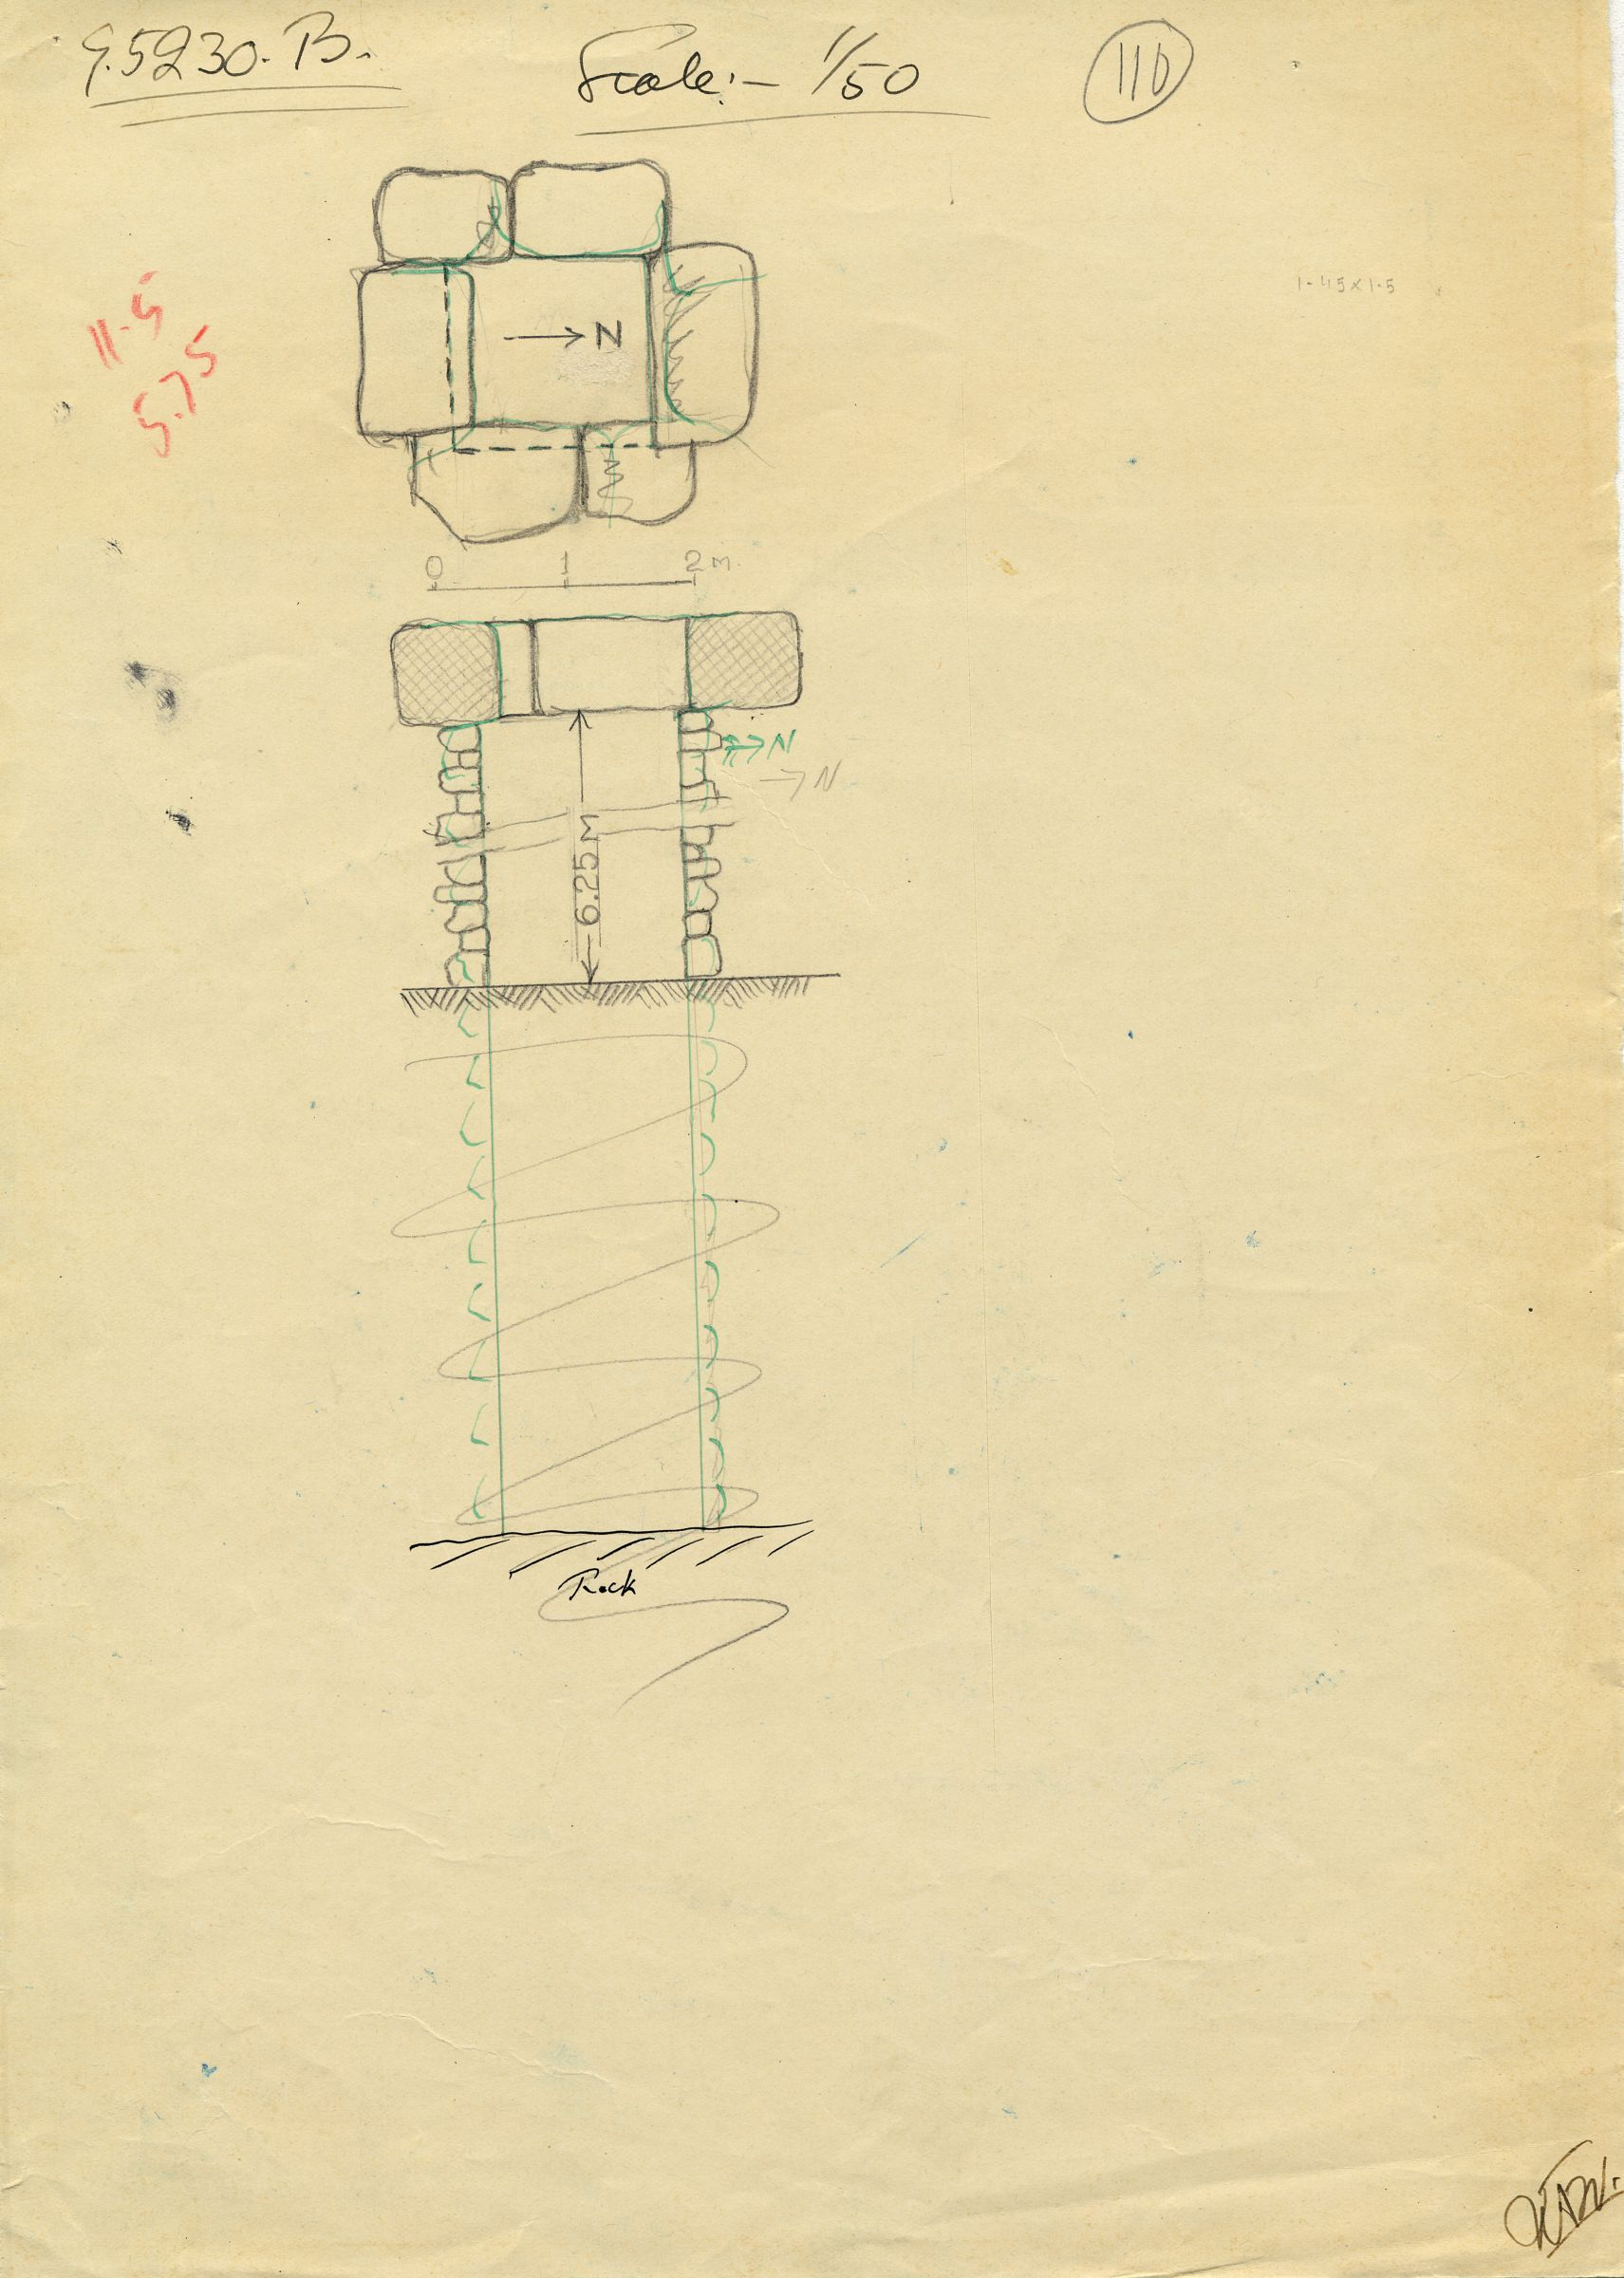 Maps and plans: G 5230, Shaft B